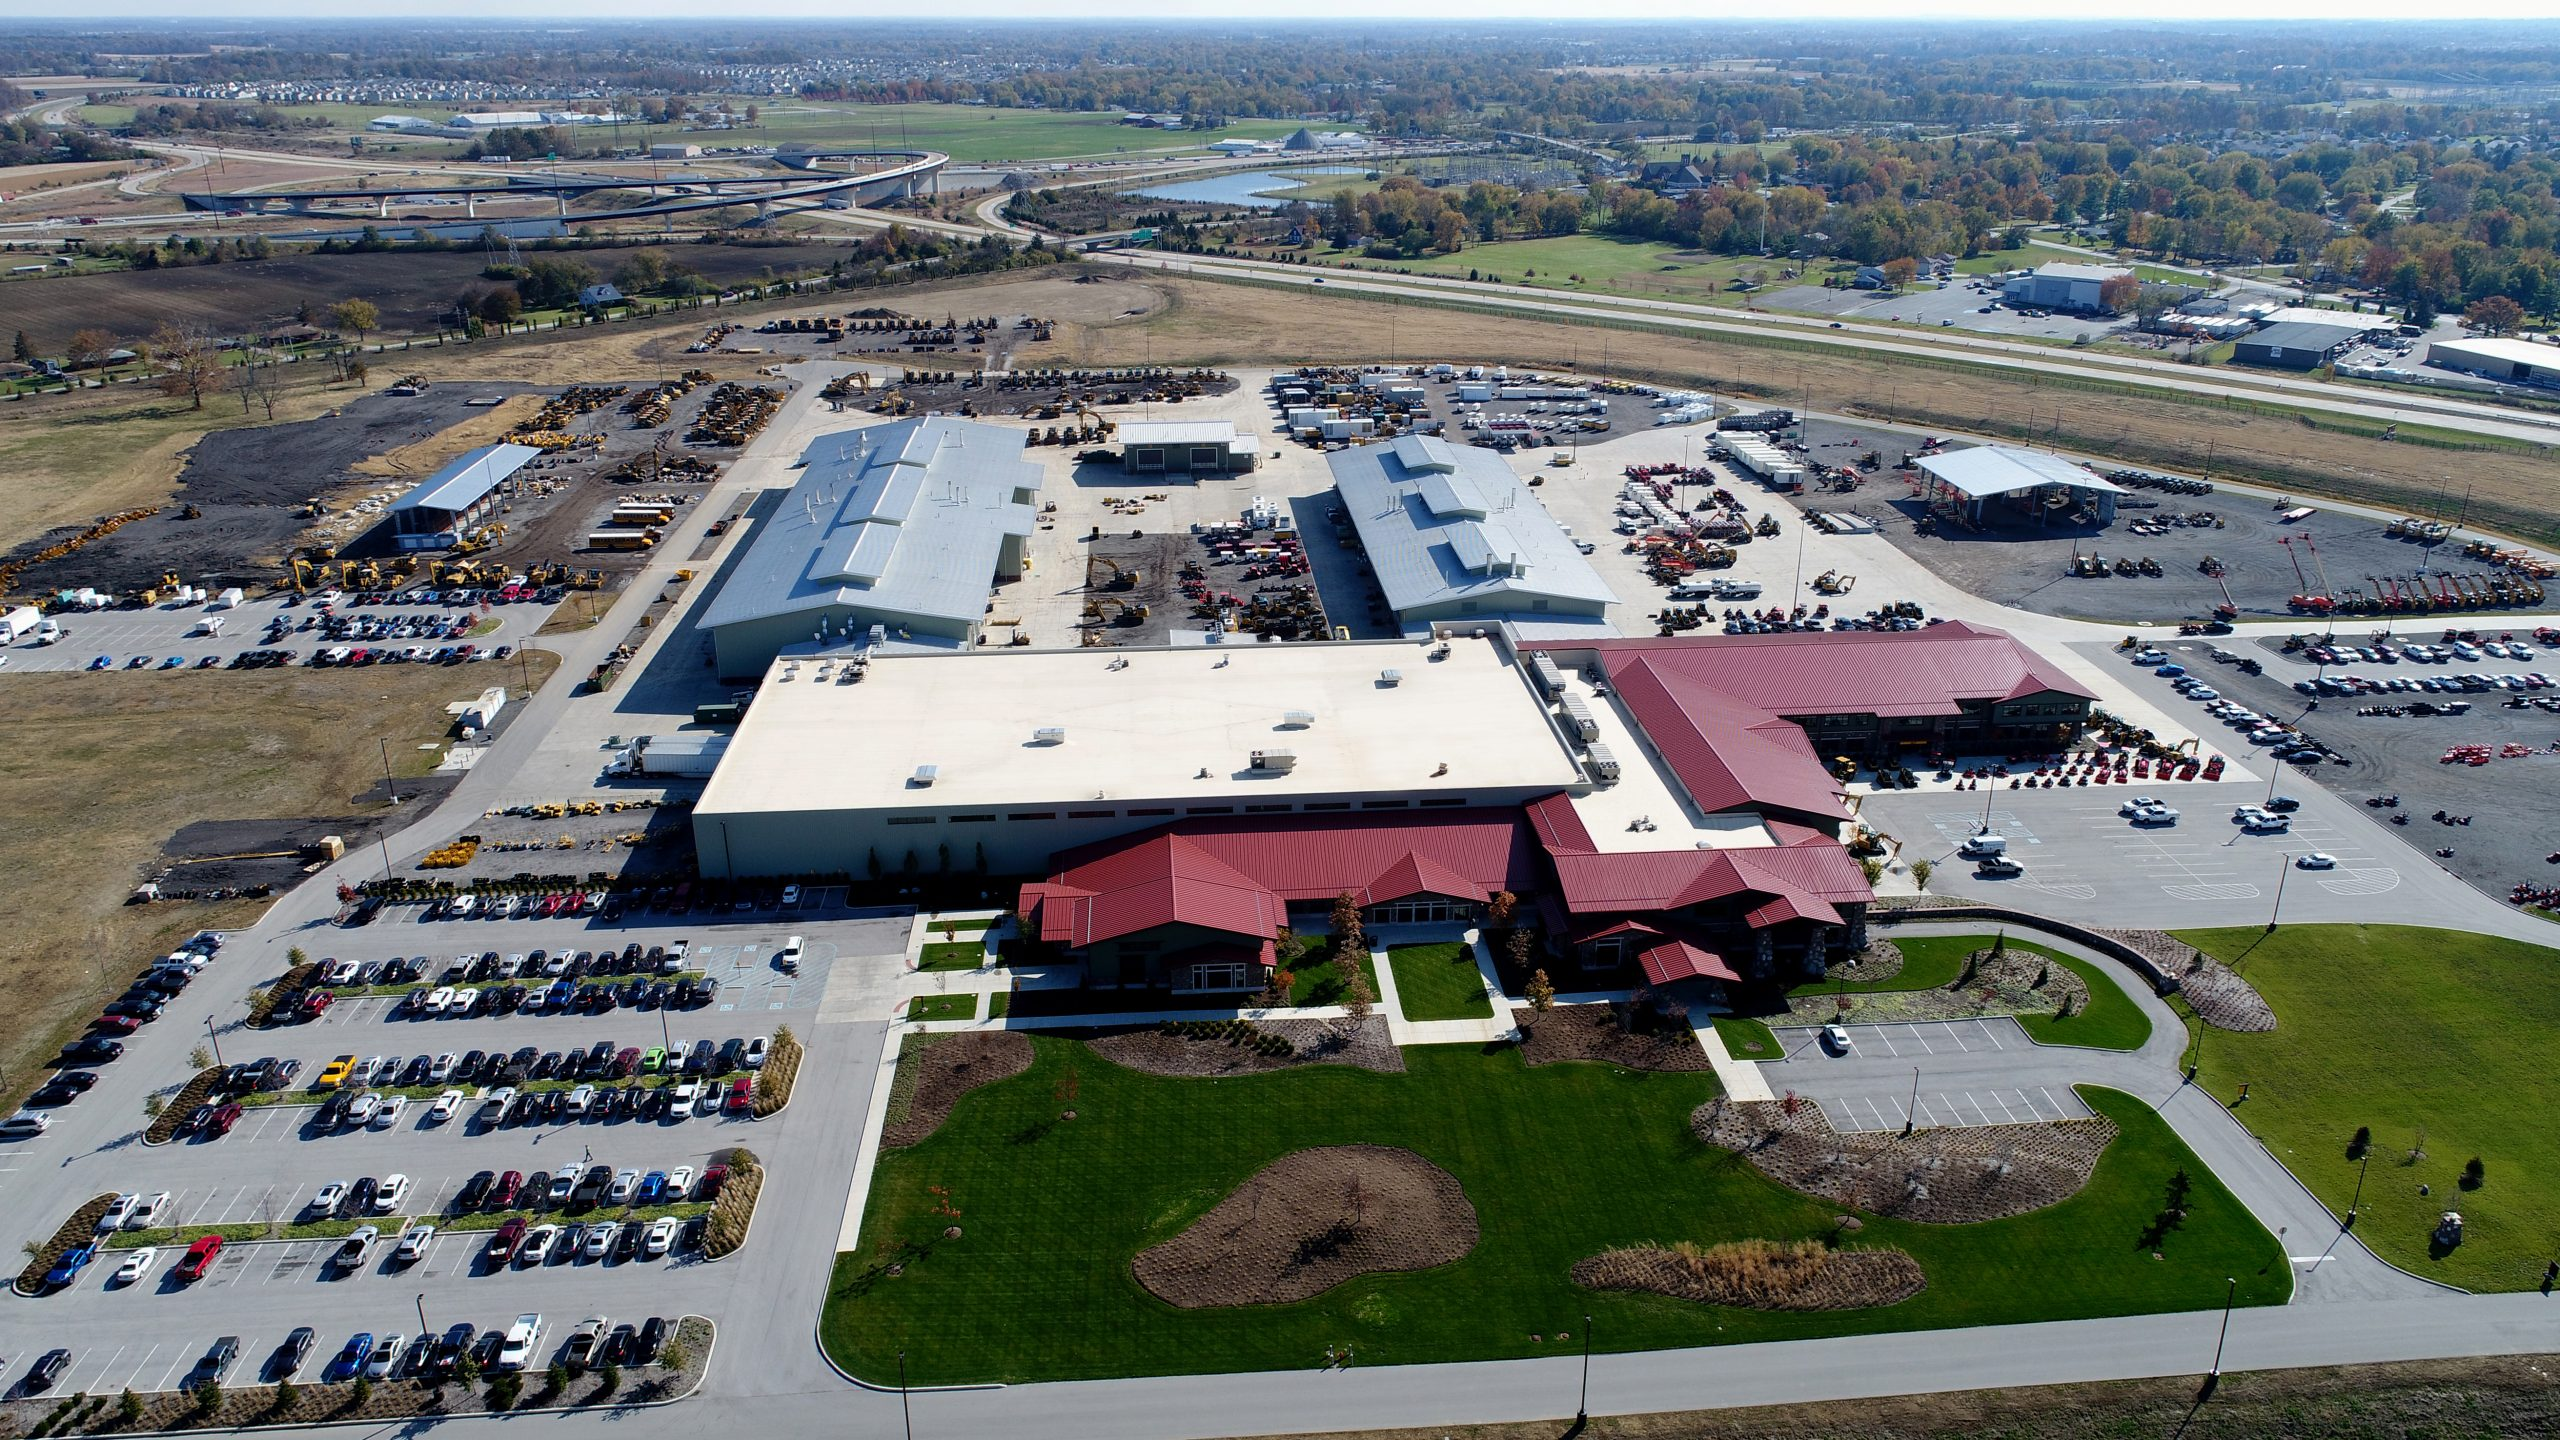 Macallister machinery commercial roofing project by ce reeve roofing in Indiana